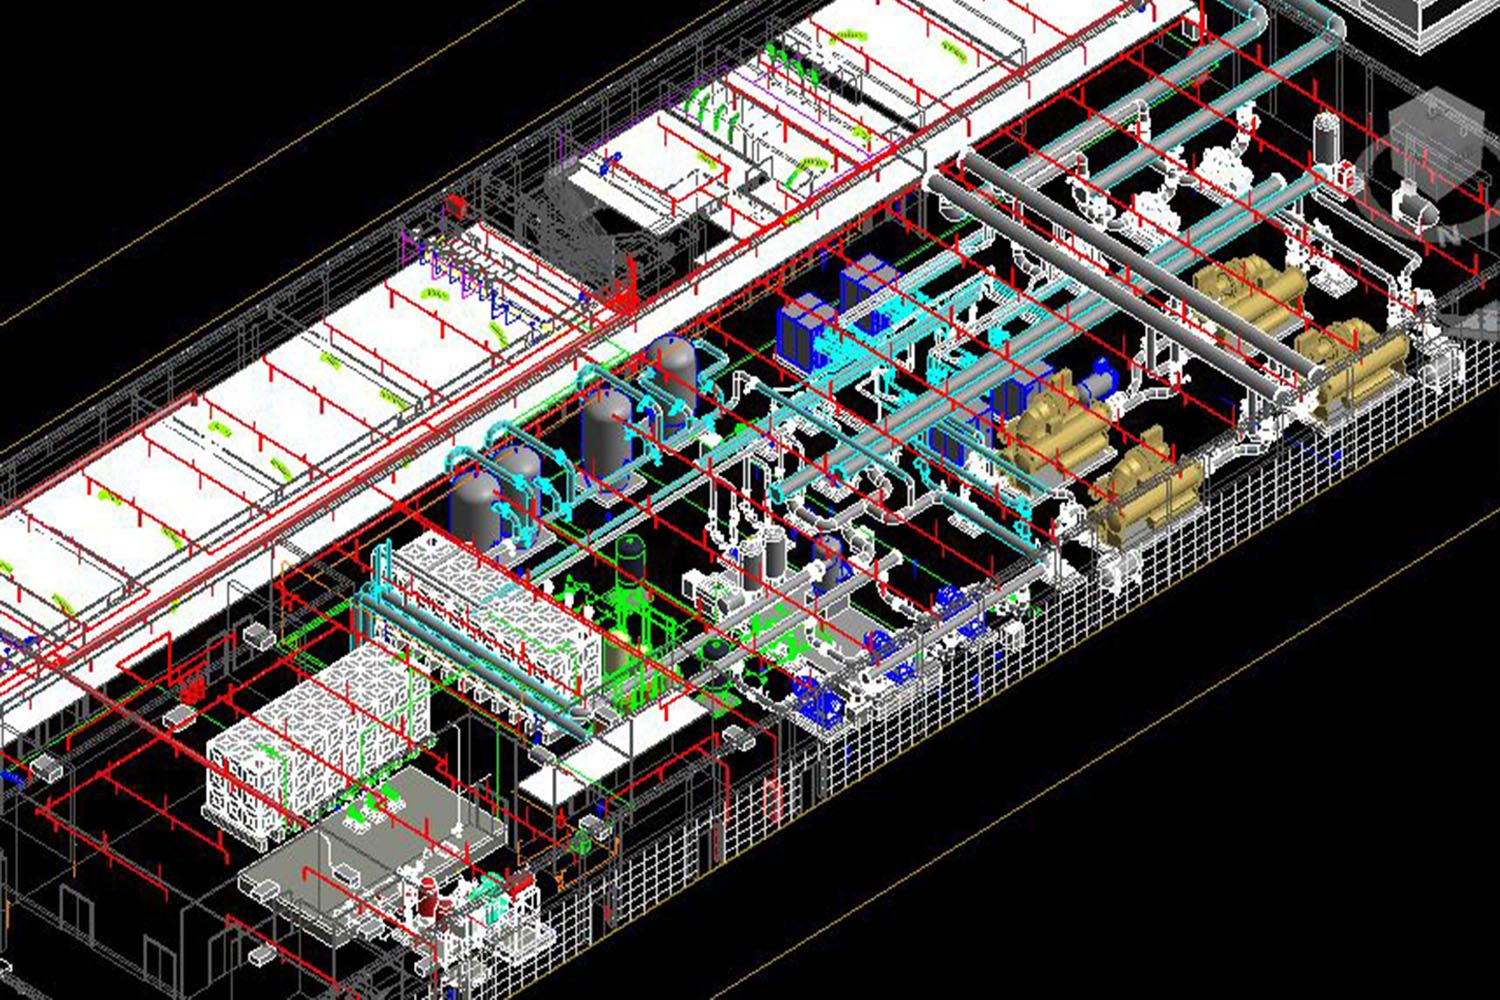 hight resolution of cad outsourcing architecture structural mep civil bim hvac plumbing shop drawing fabrication rebar detailing